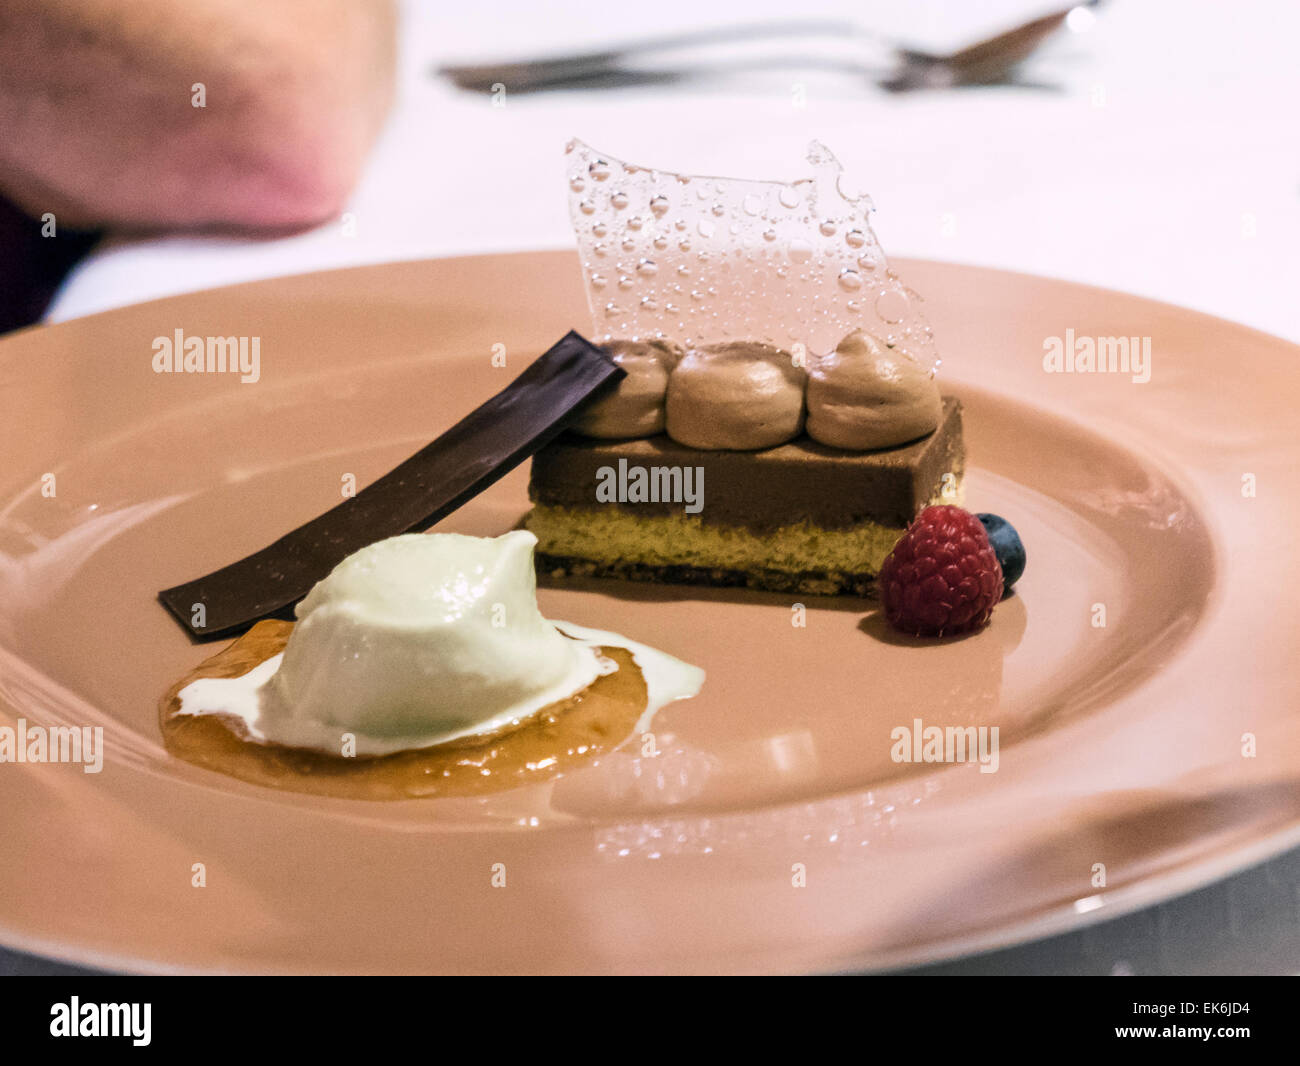 Fancy dessert, Rifugio Fuciade, Pale di San Martino, Dolomite Mountains, Alps, Italy - Stock Image